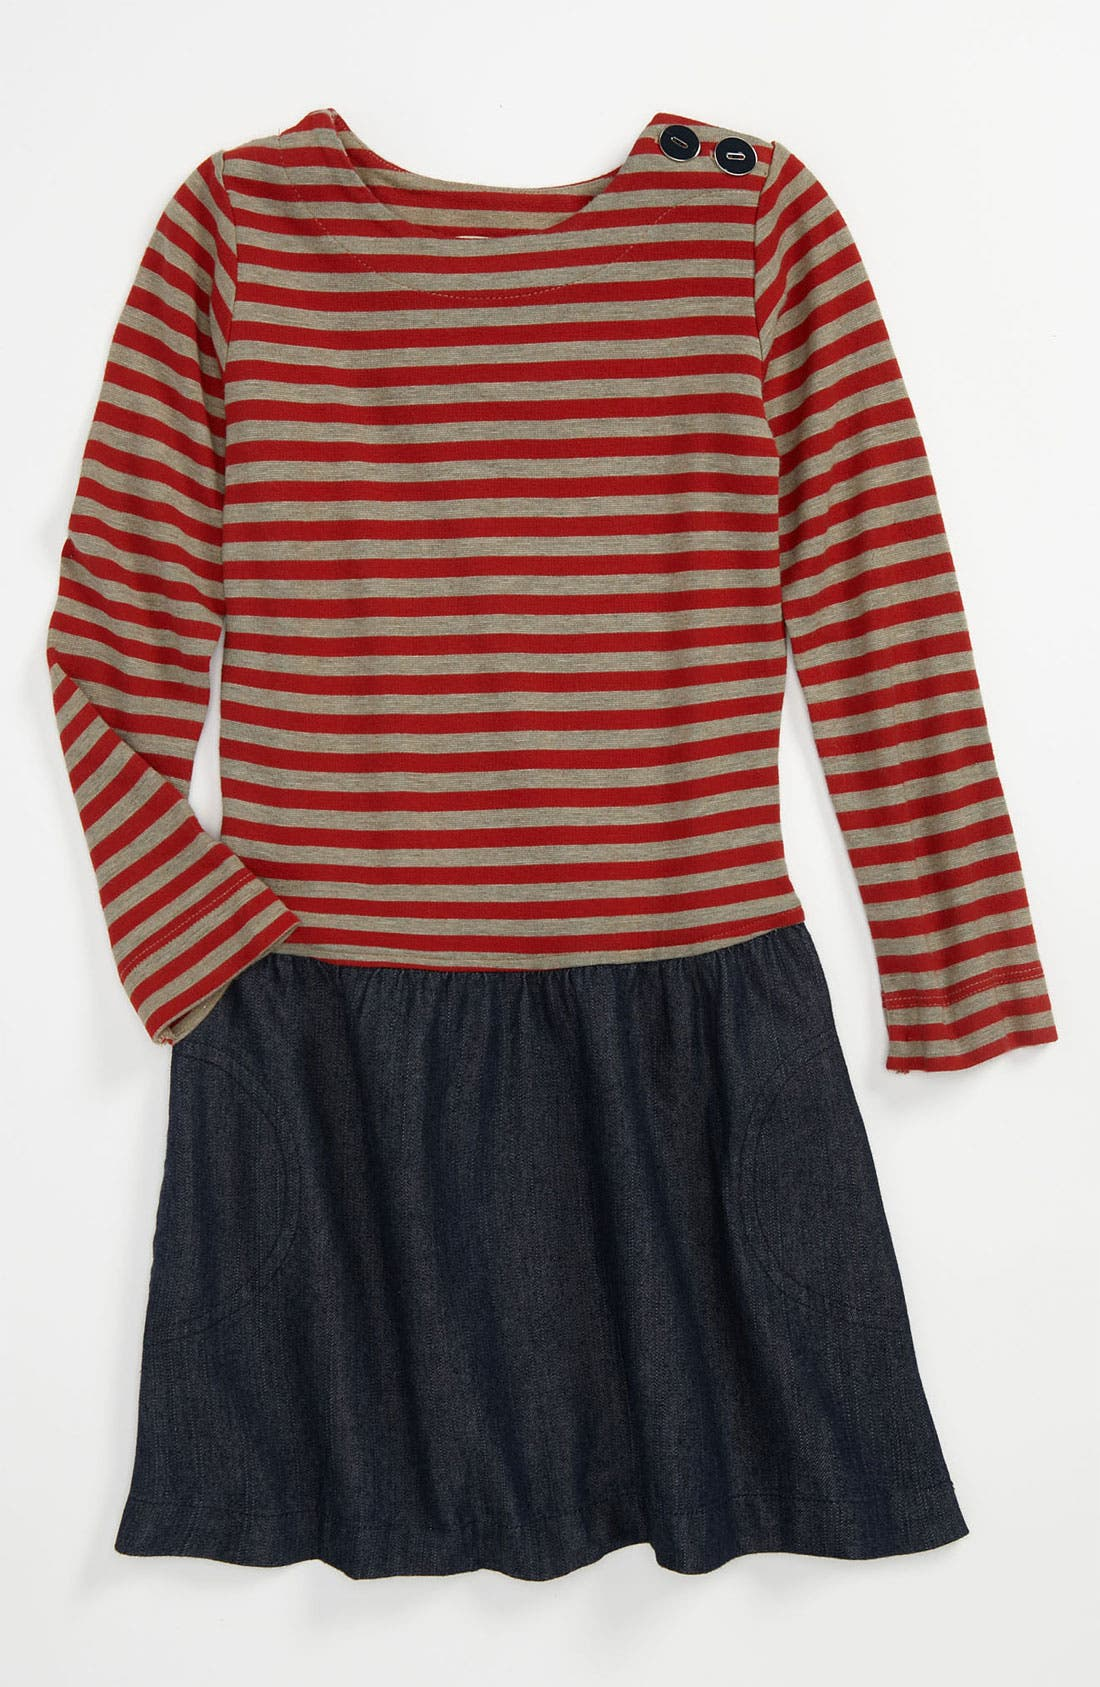 Alternate Image 1 Selected - Anthem of the Ants 'Museum' Stripe Dress (Little Girls & Big Girls)